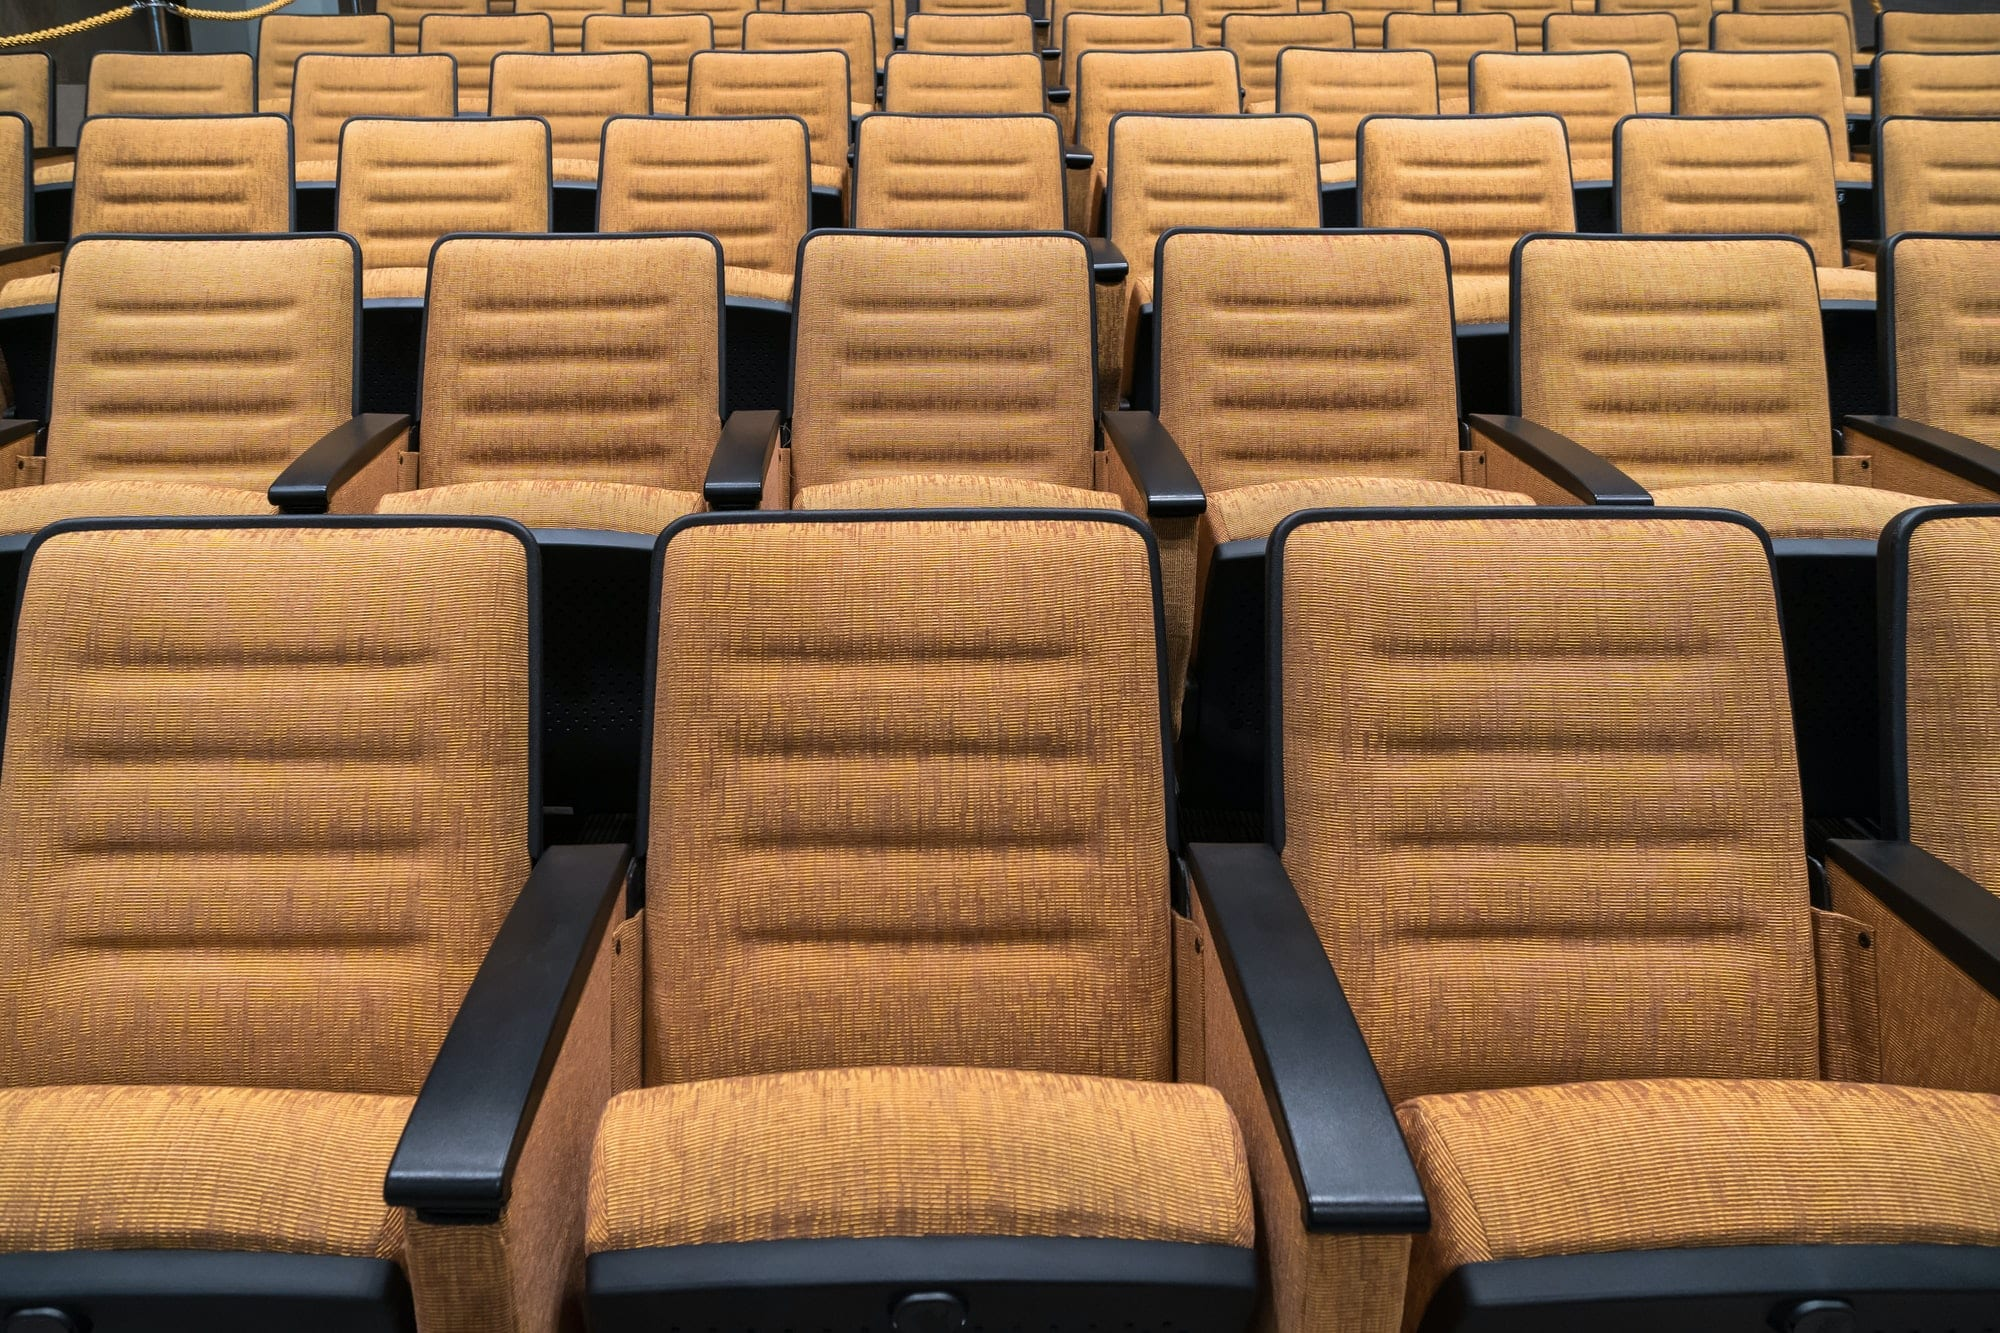 Chiars in the theater seats